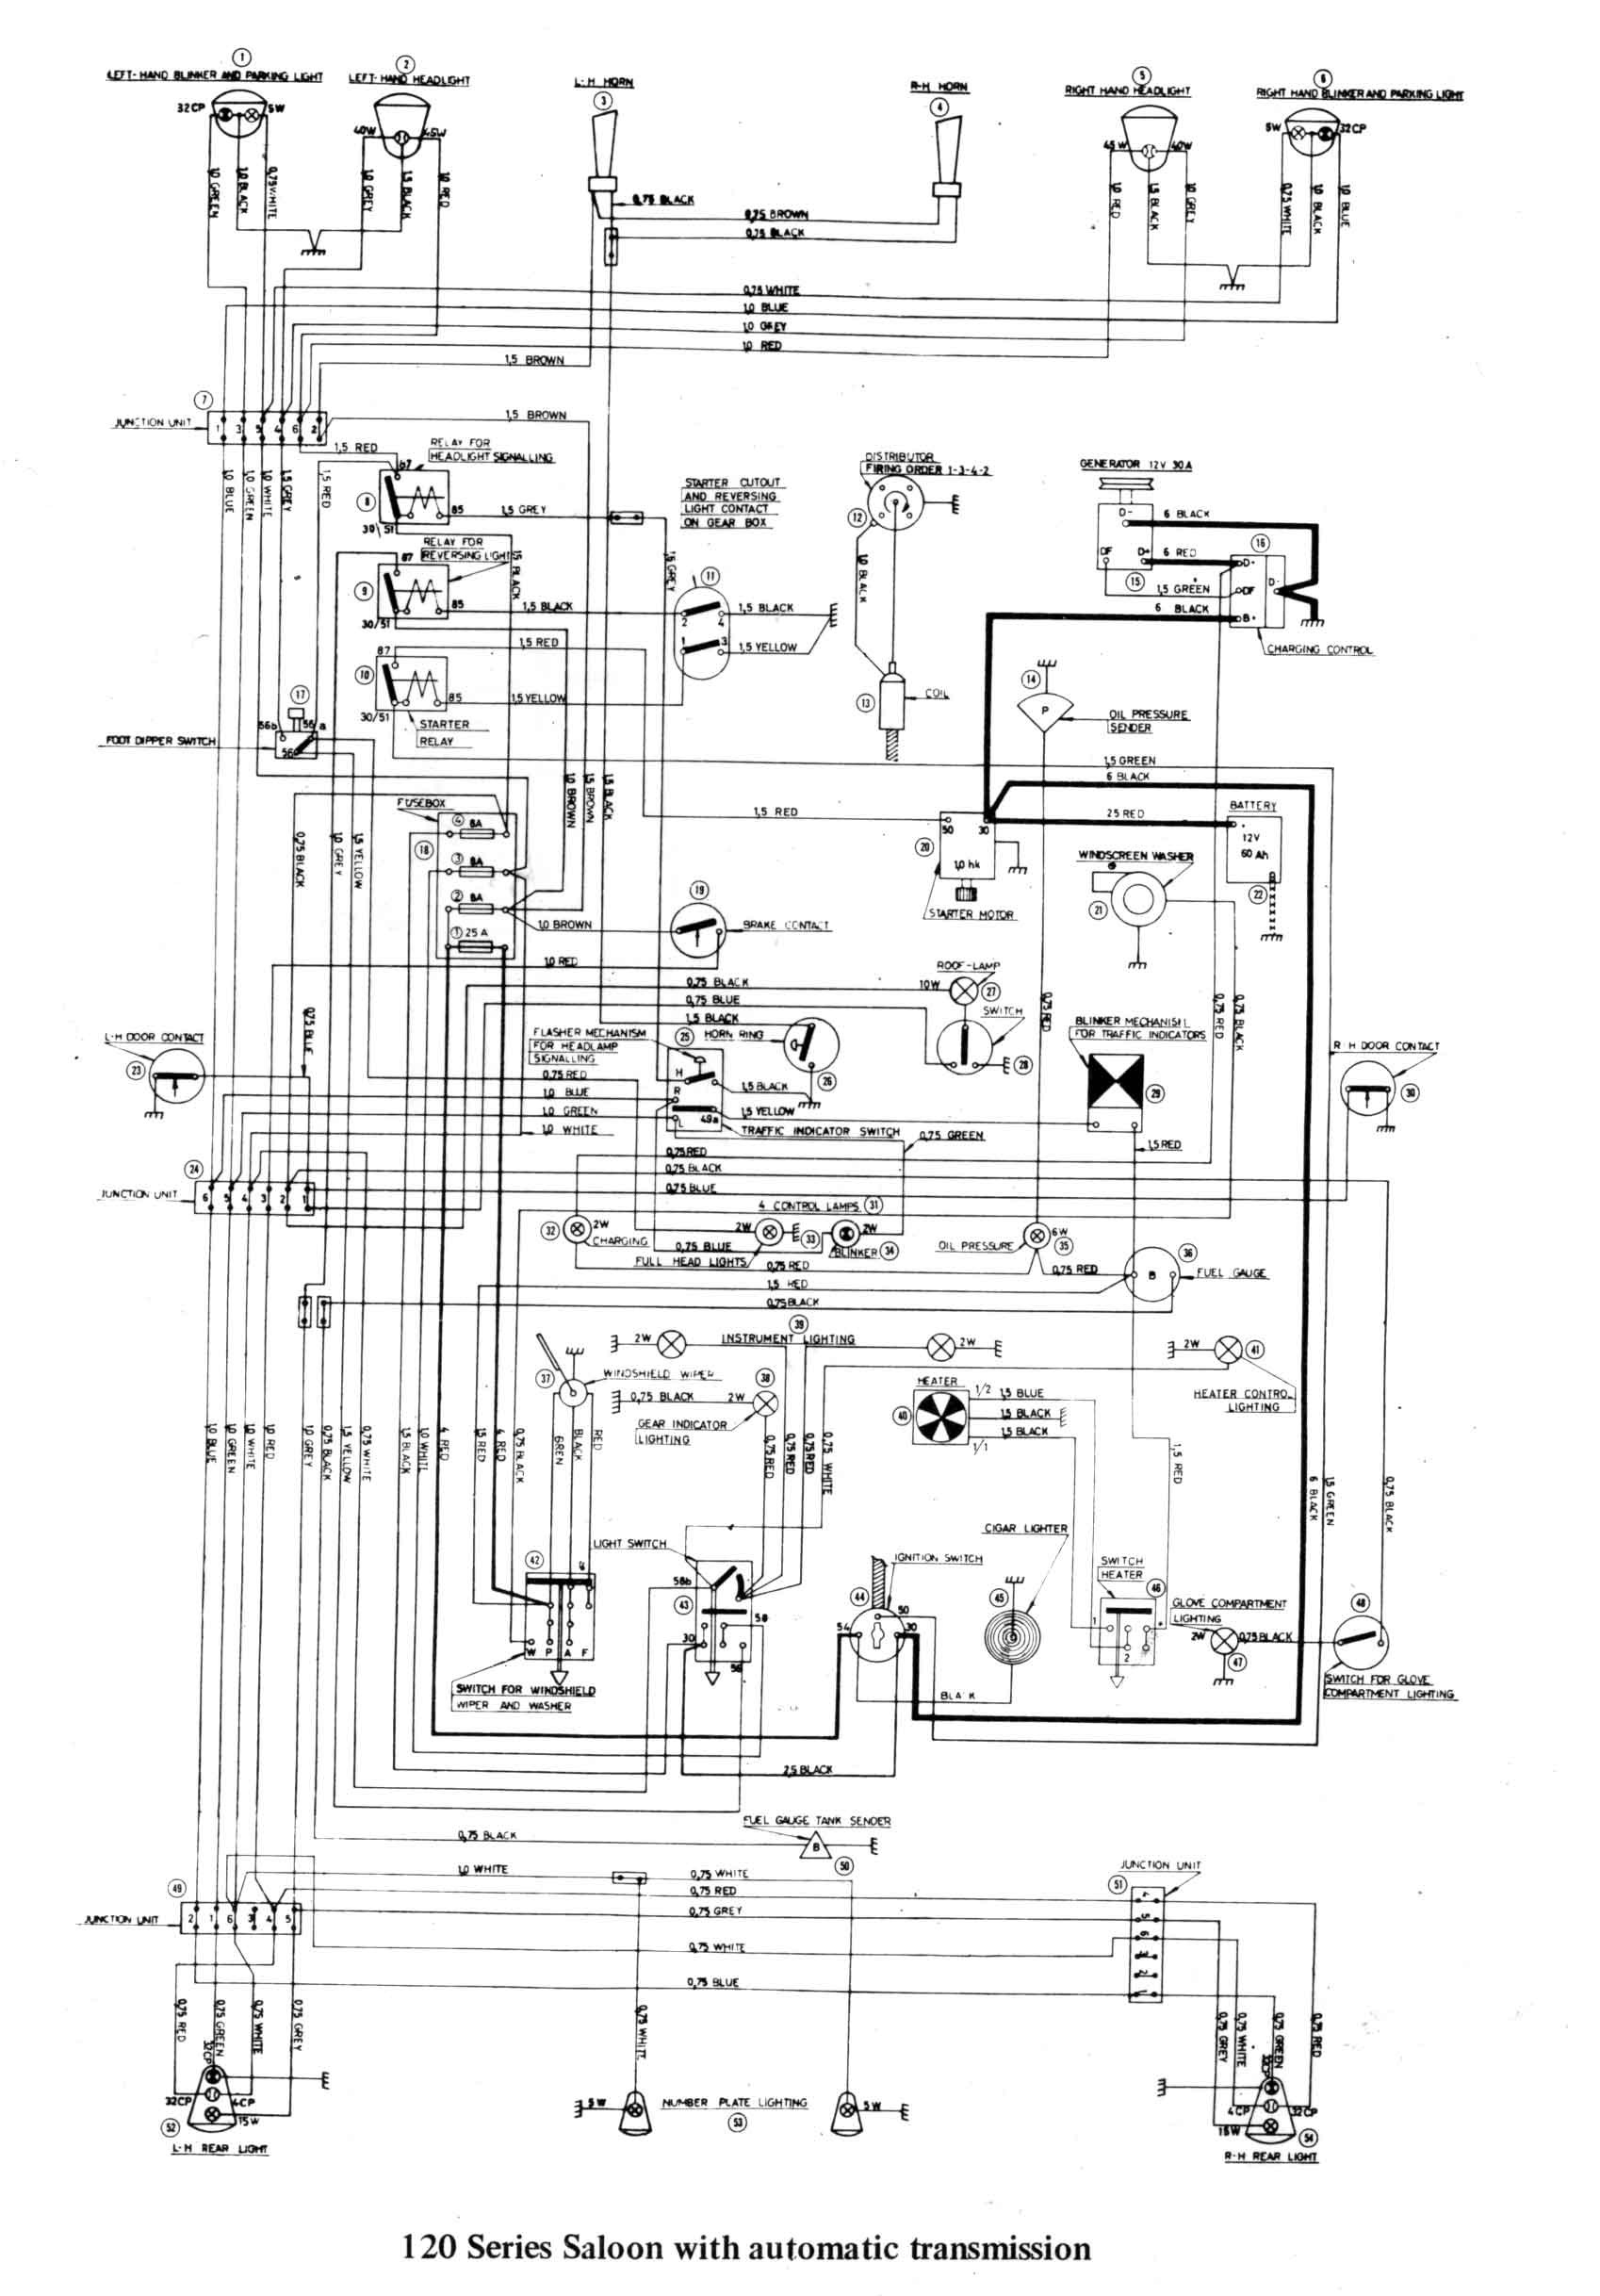 dta s40 pro wiring diagram srs the mgf register forums mx5 engine bay my